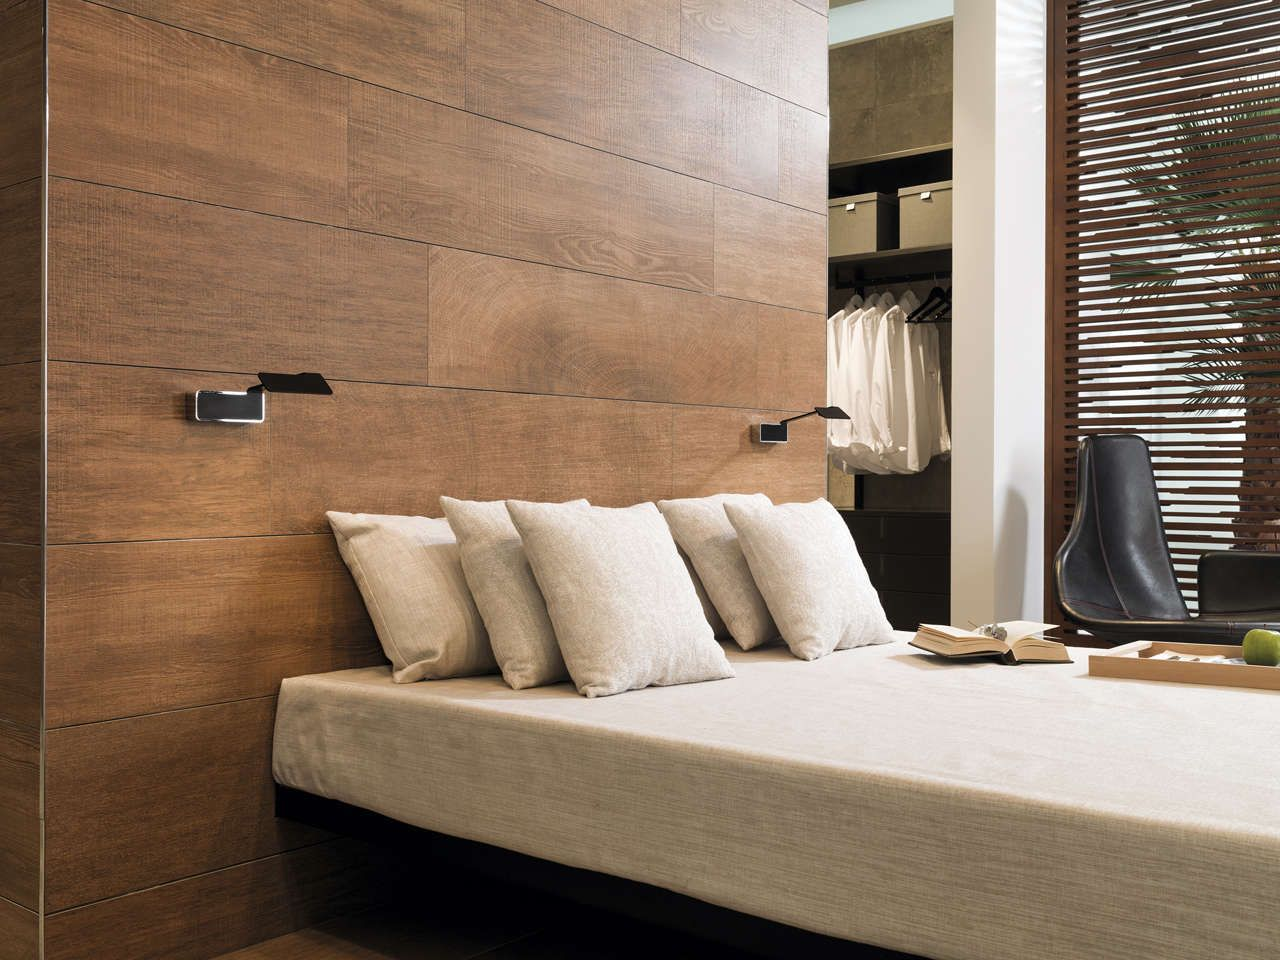 par-ker™ wall tiles houston natural 29,4x120 cm | concepts